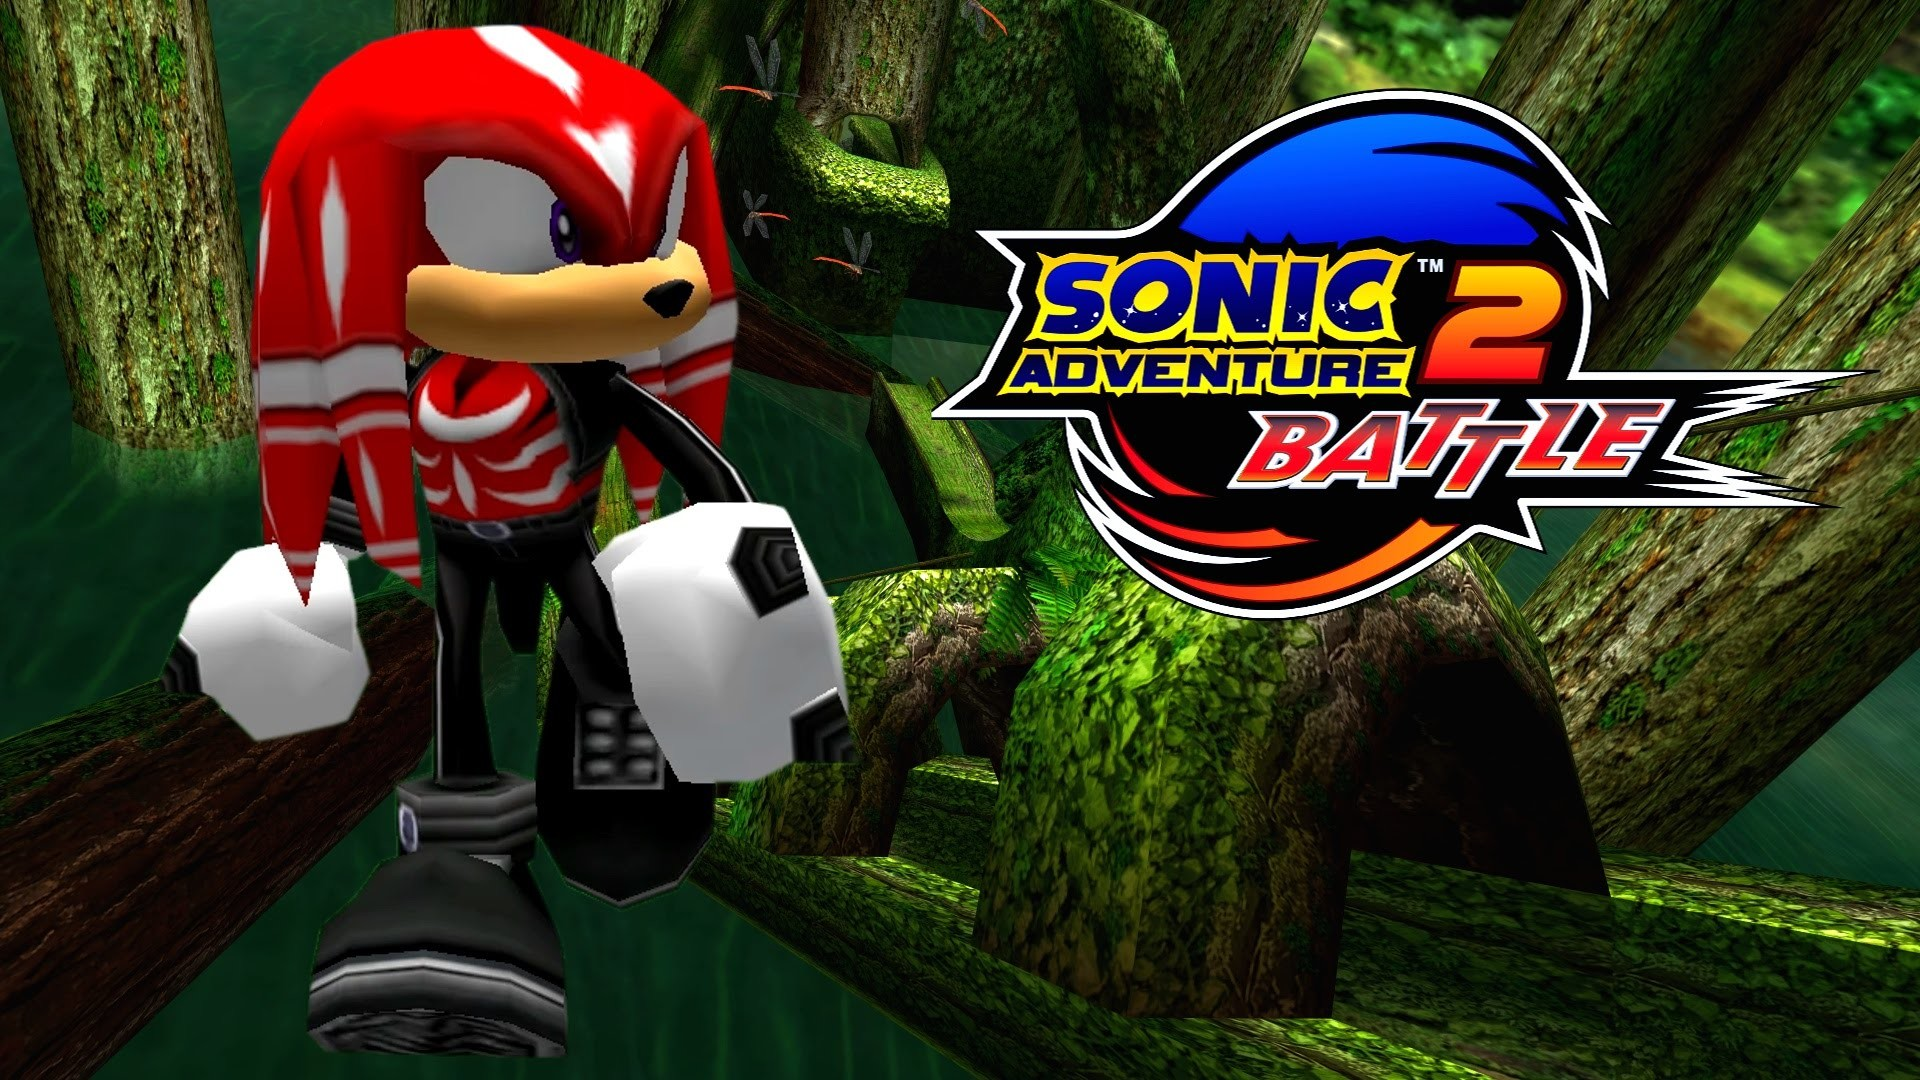 1920x1080 Sonic Adventure 2: Battle - Green Forest - Knuckles (Dreamcast costume)  Full HD Widescreen 60 FPS - YouTube